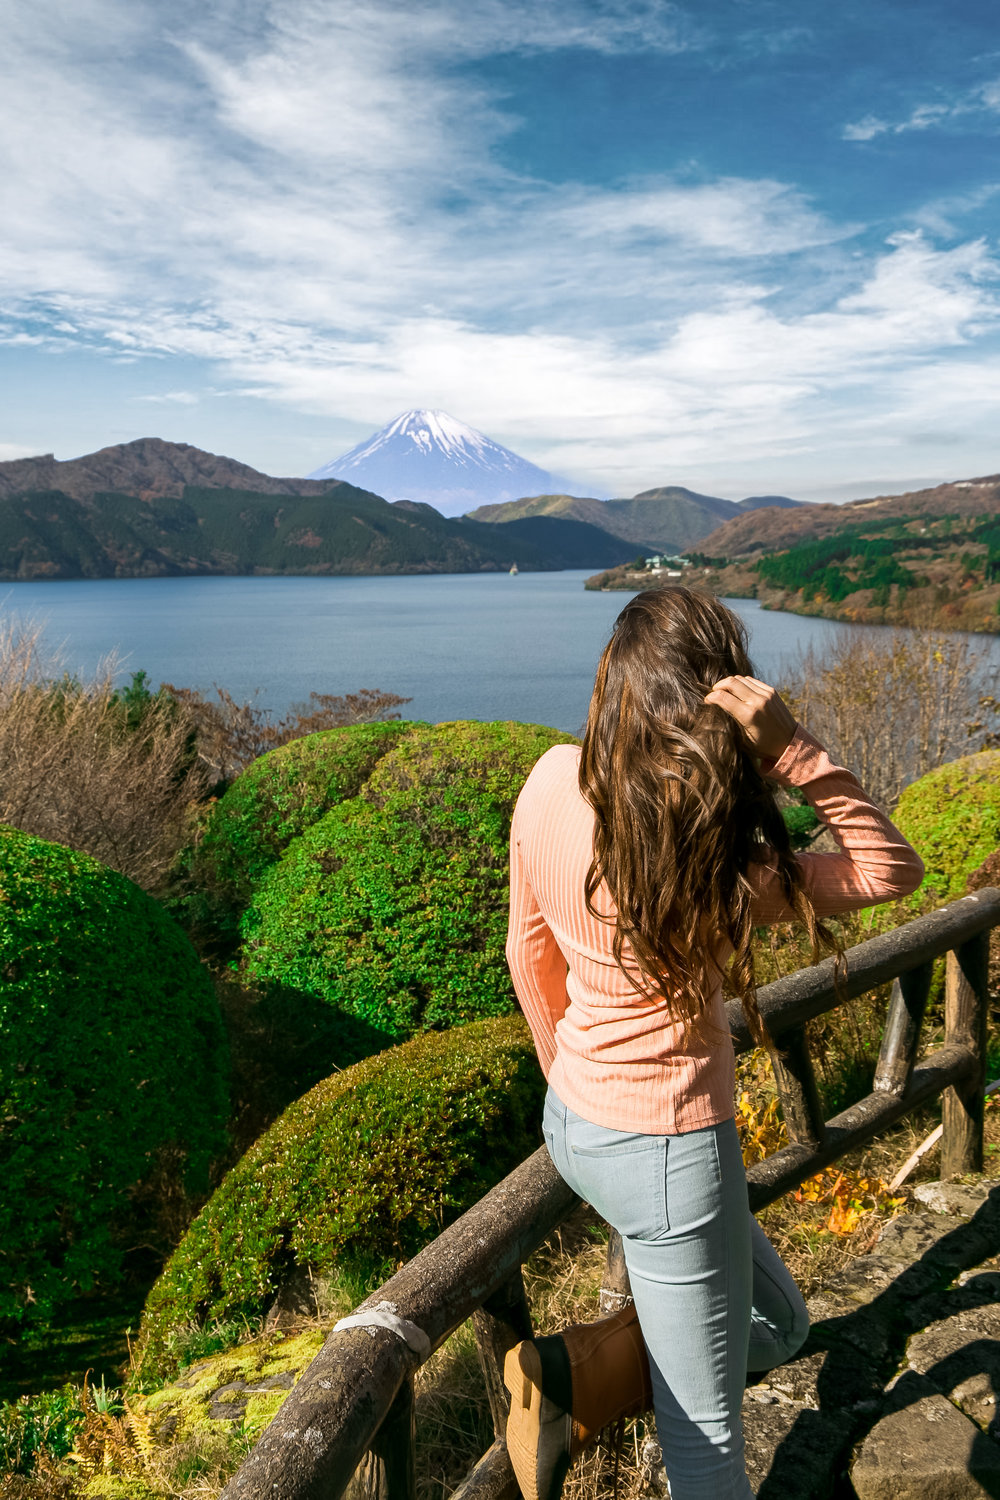 Visiting Mt Fuji is a must do while in Tokyo and is only a train ride away!